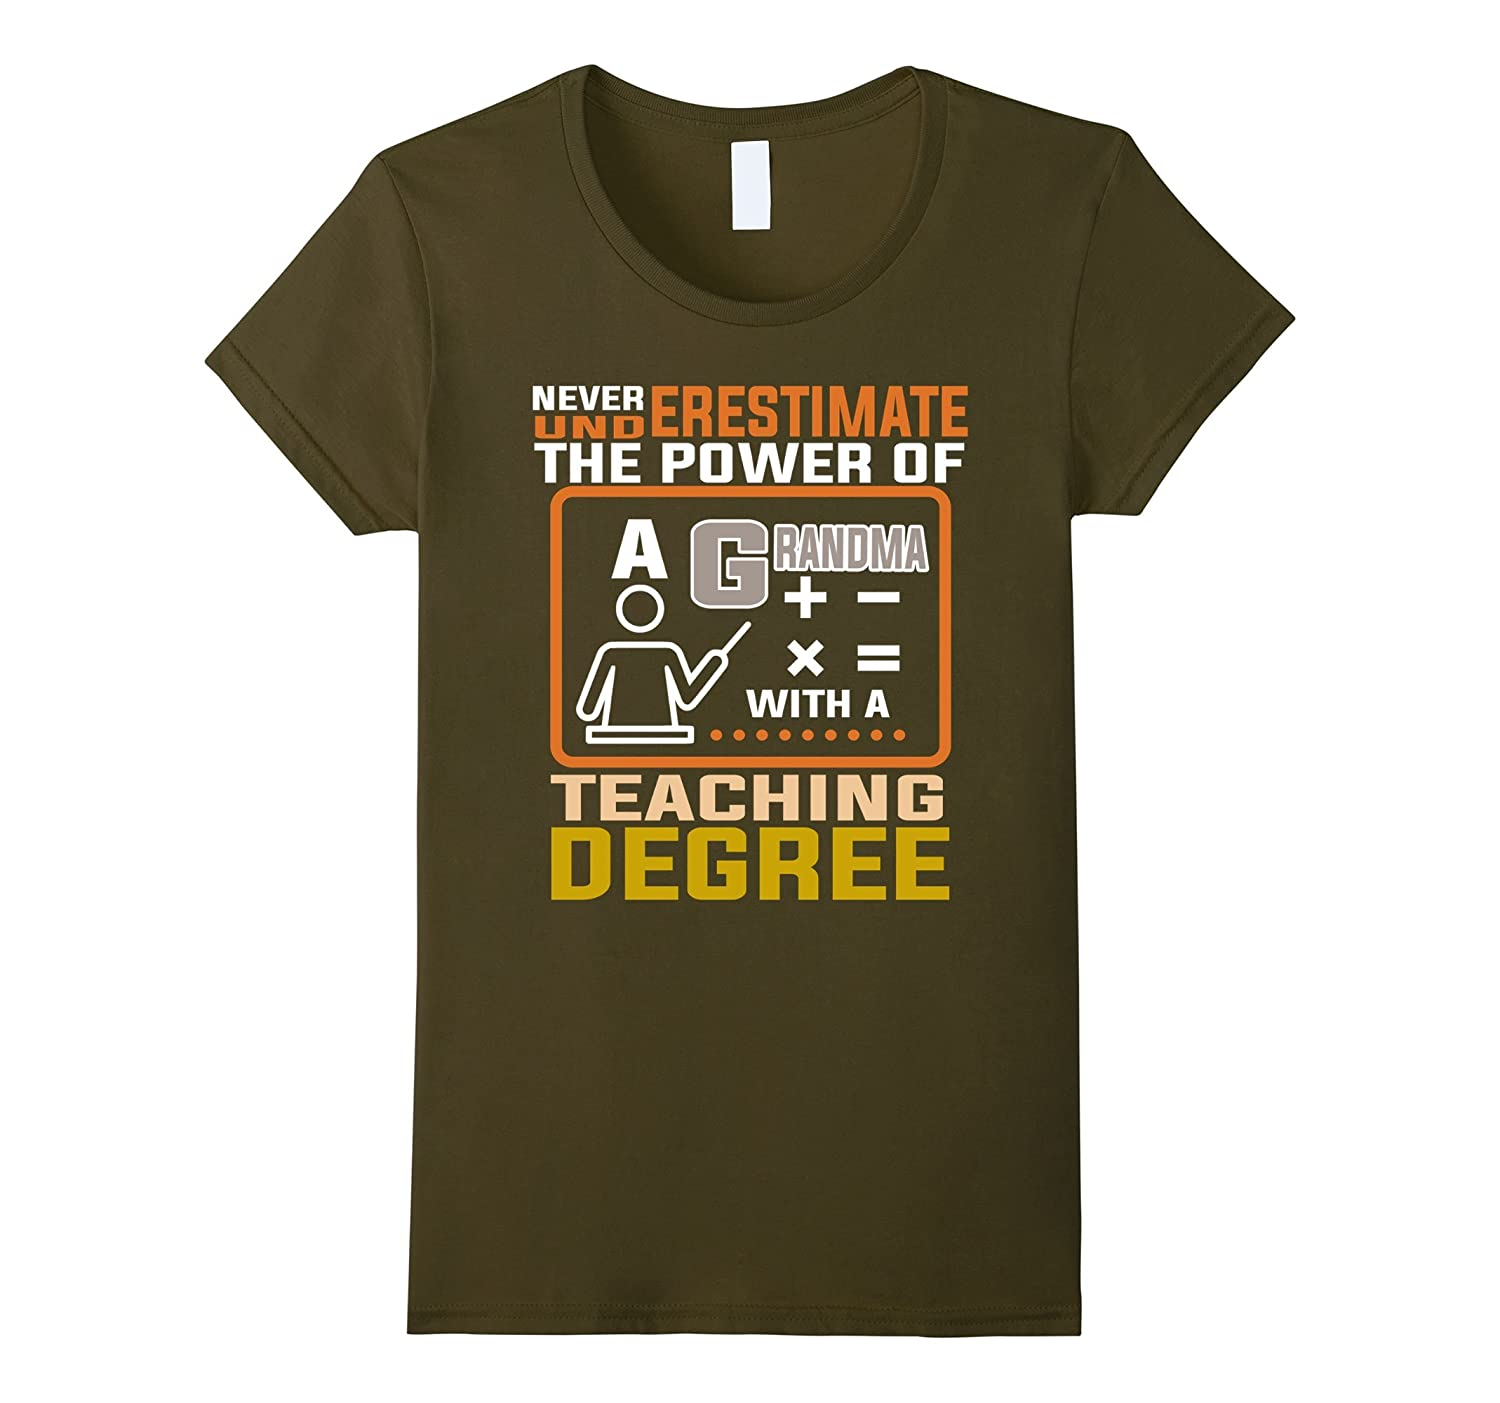 A Grandma With A Teaching Degree T Shirt, Teacher T Shirt